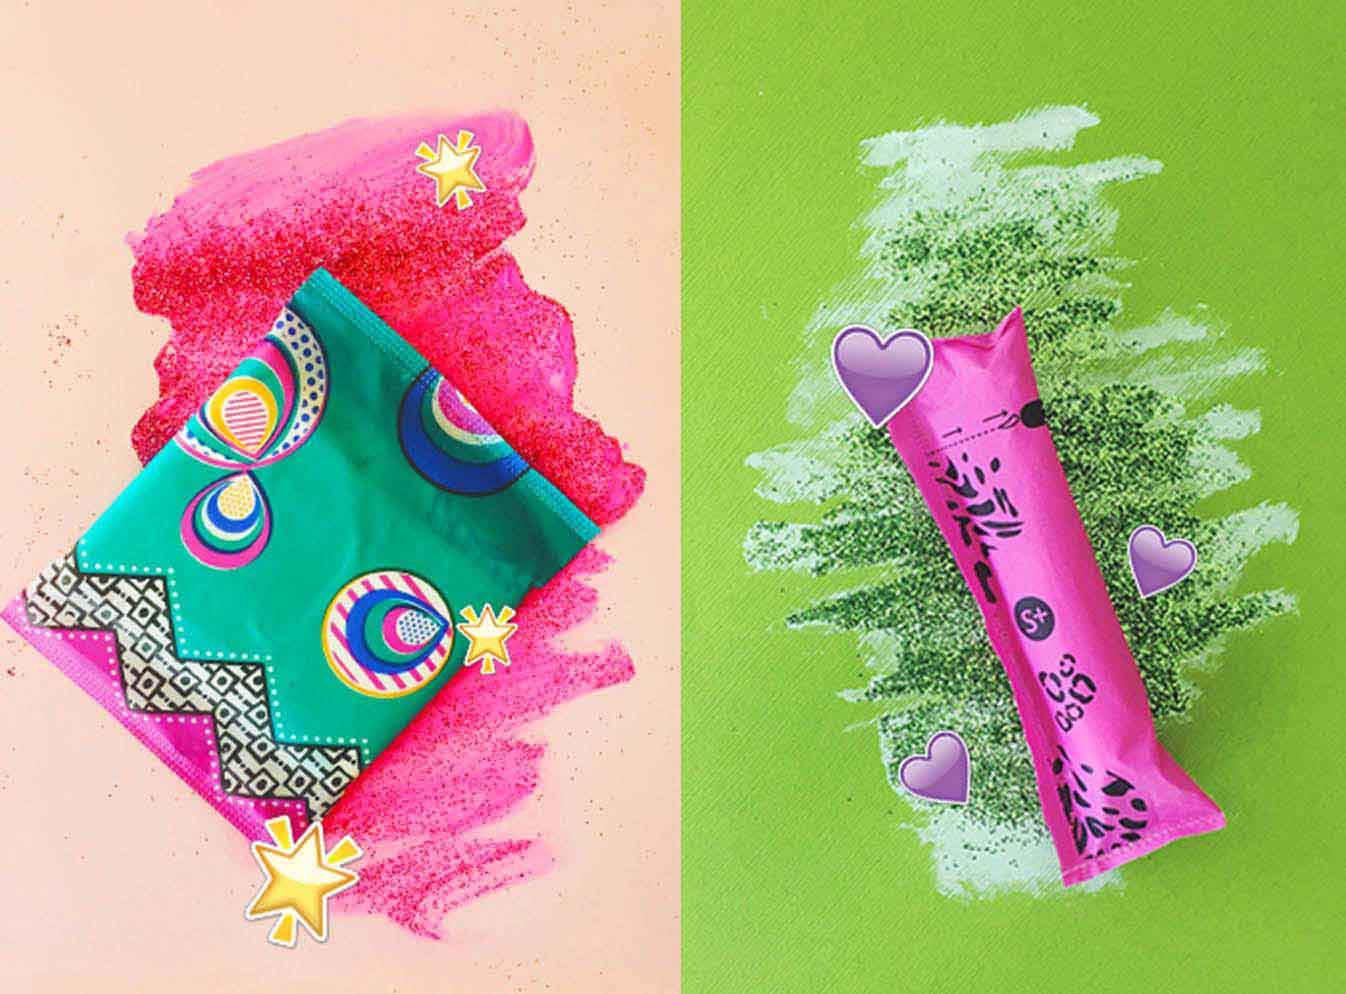 U by Kotex pad and tampon vibrant color backgrounds